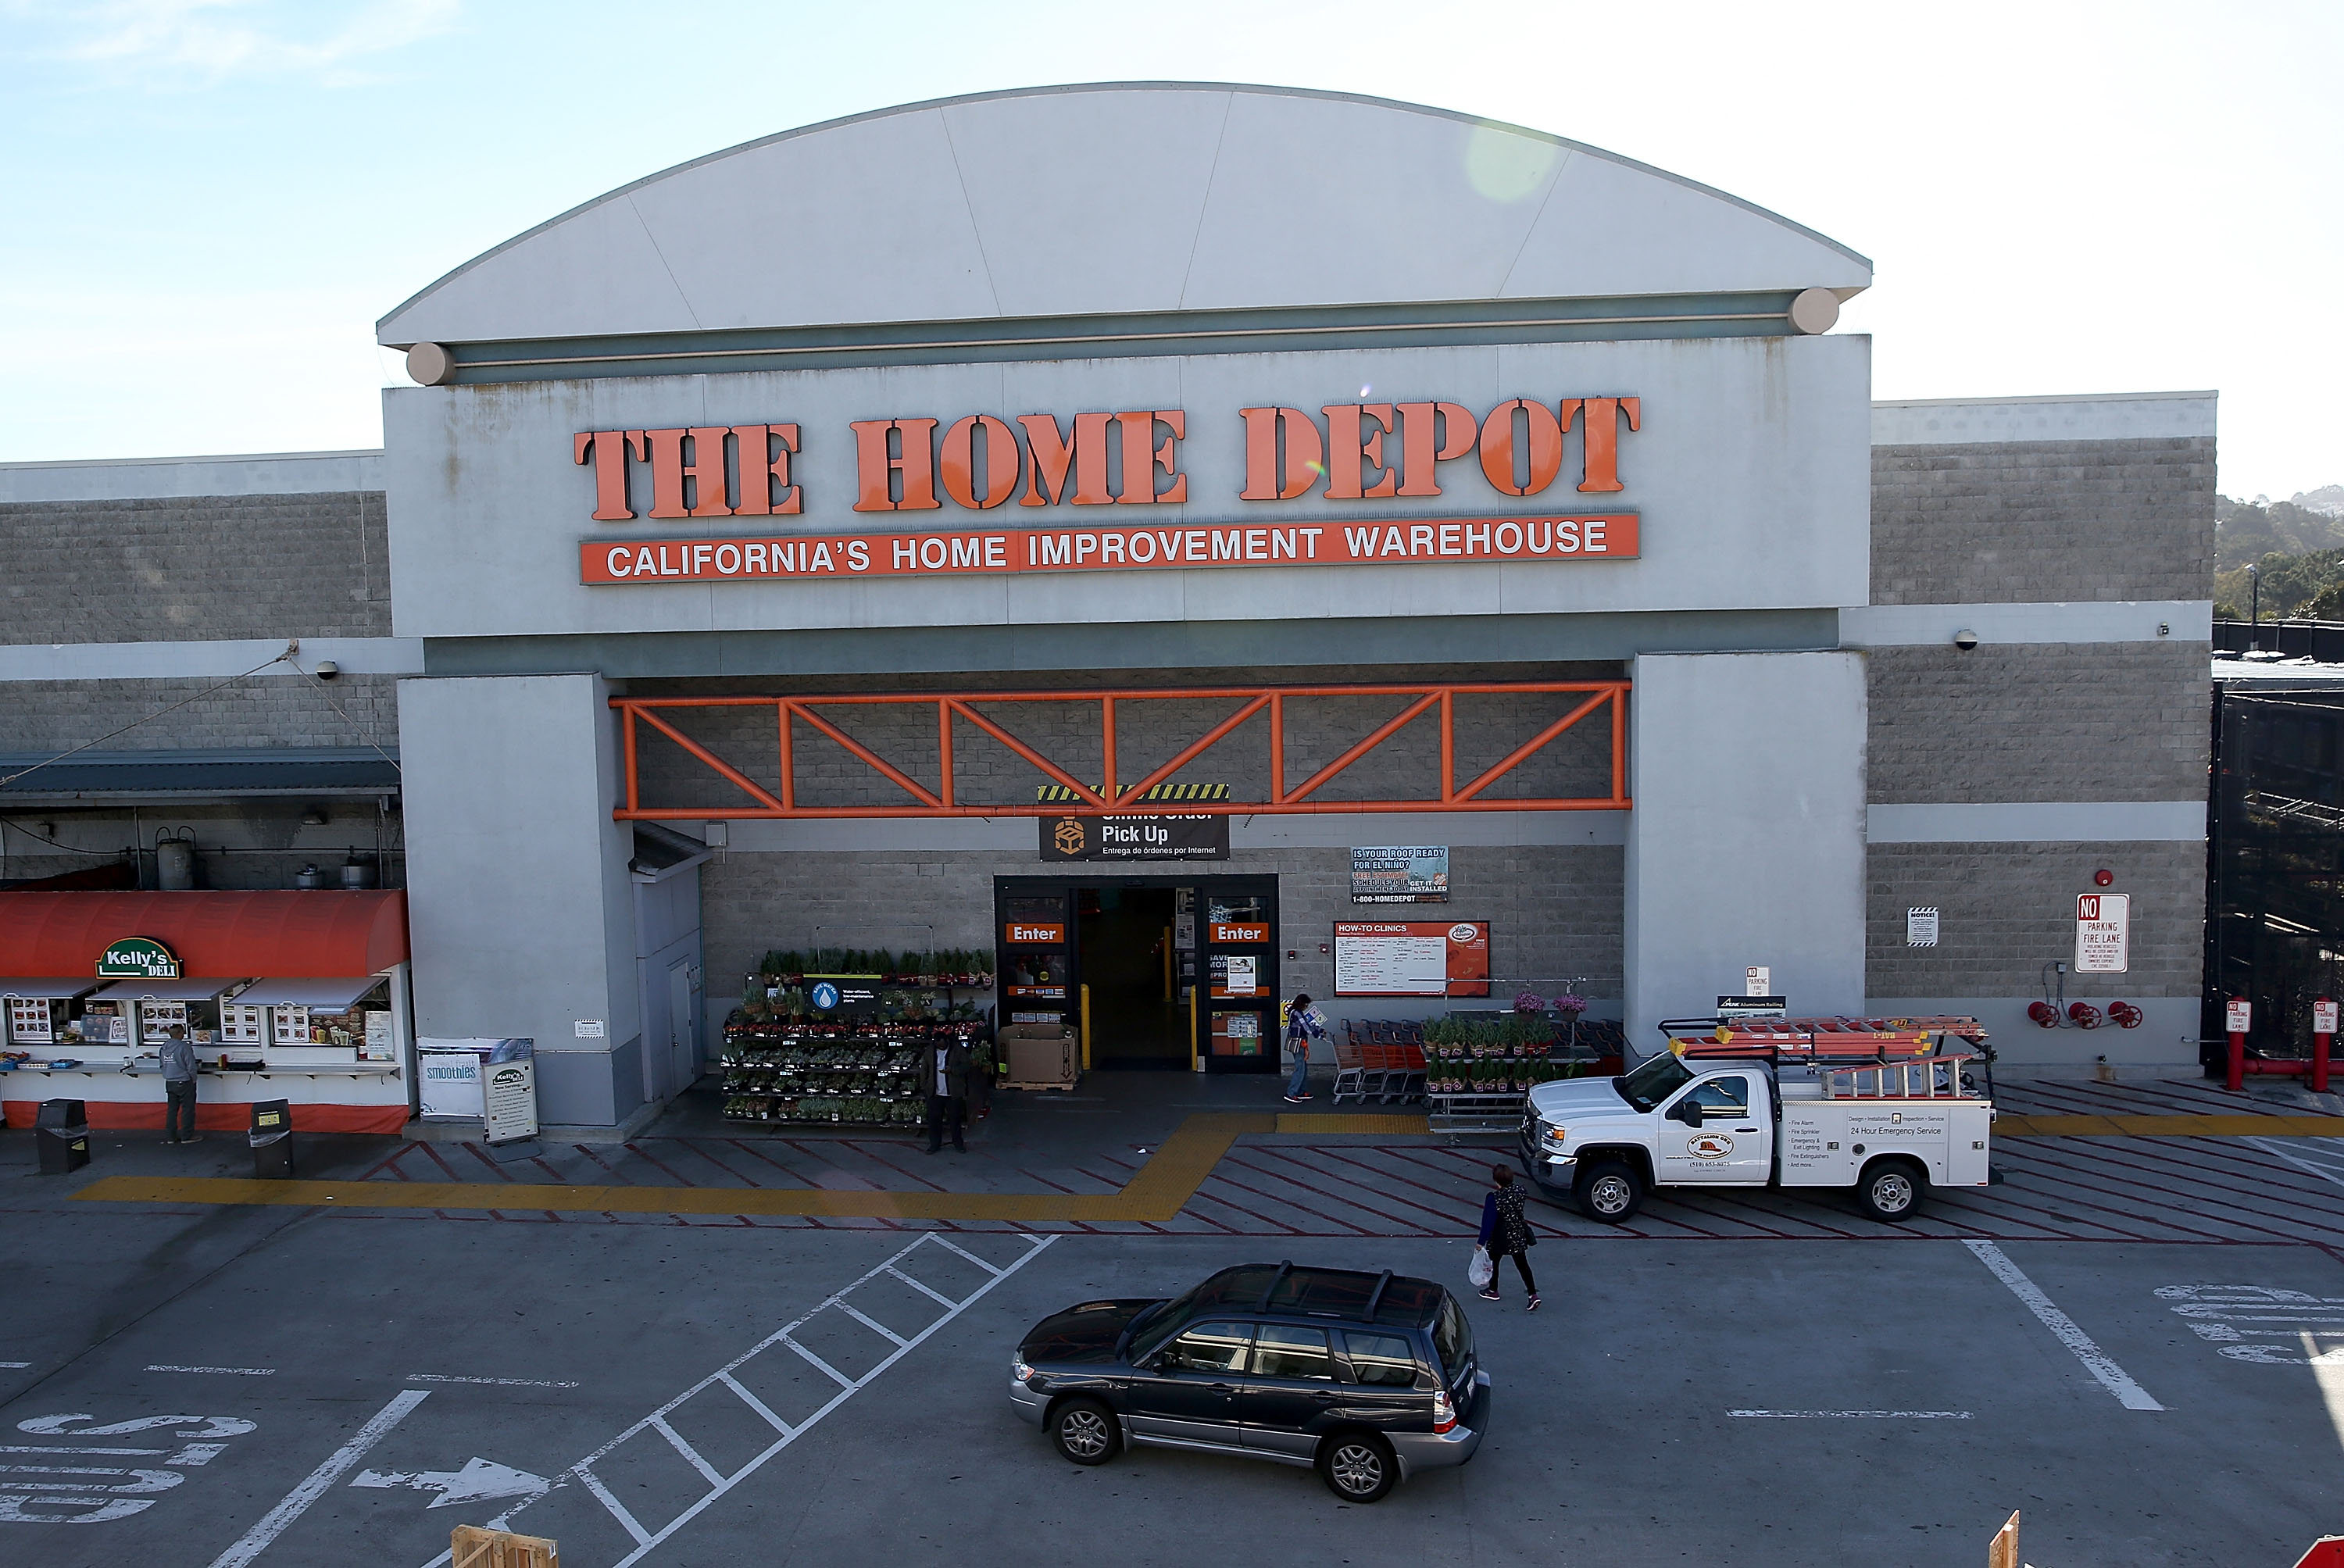 A view of a Home Depot store on November 17, 2015 in Colma, California. Tatiana Duva-Rodriguez was granted 18 months probation after shooting at two suspected shoplifters in a Home Depot parking lot.